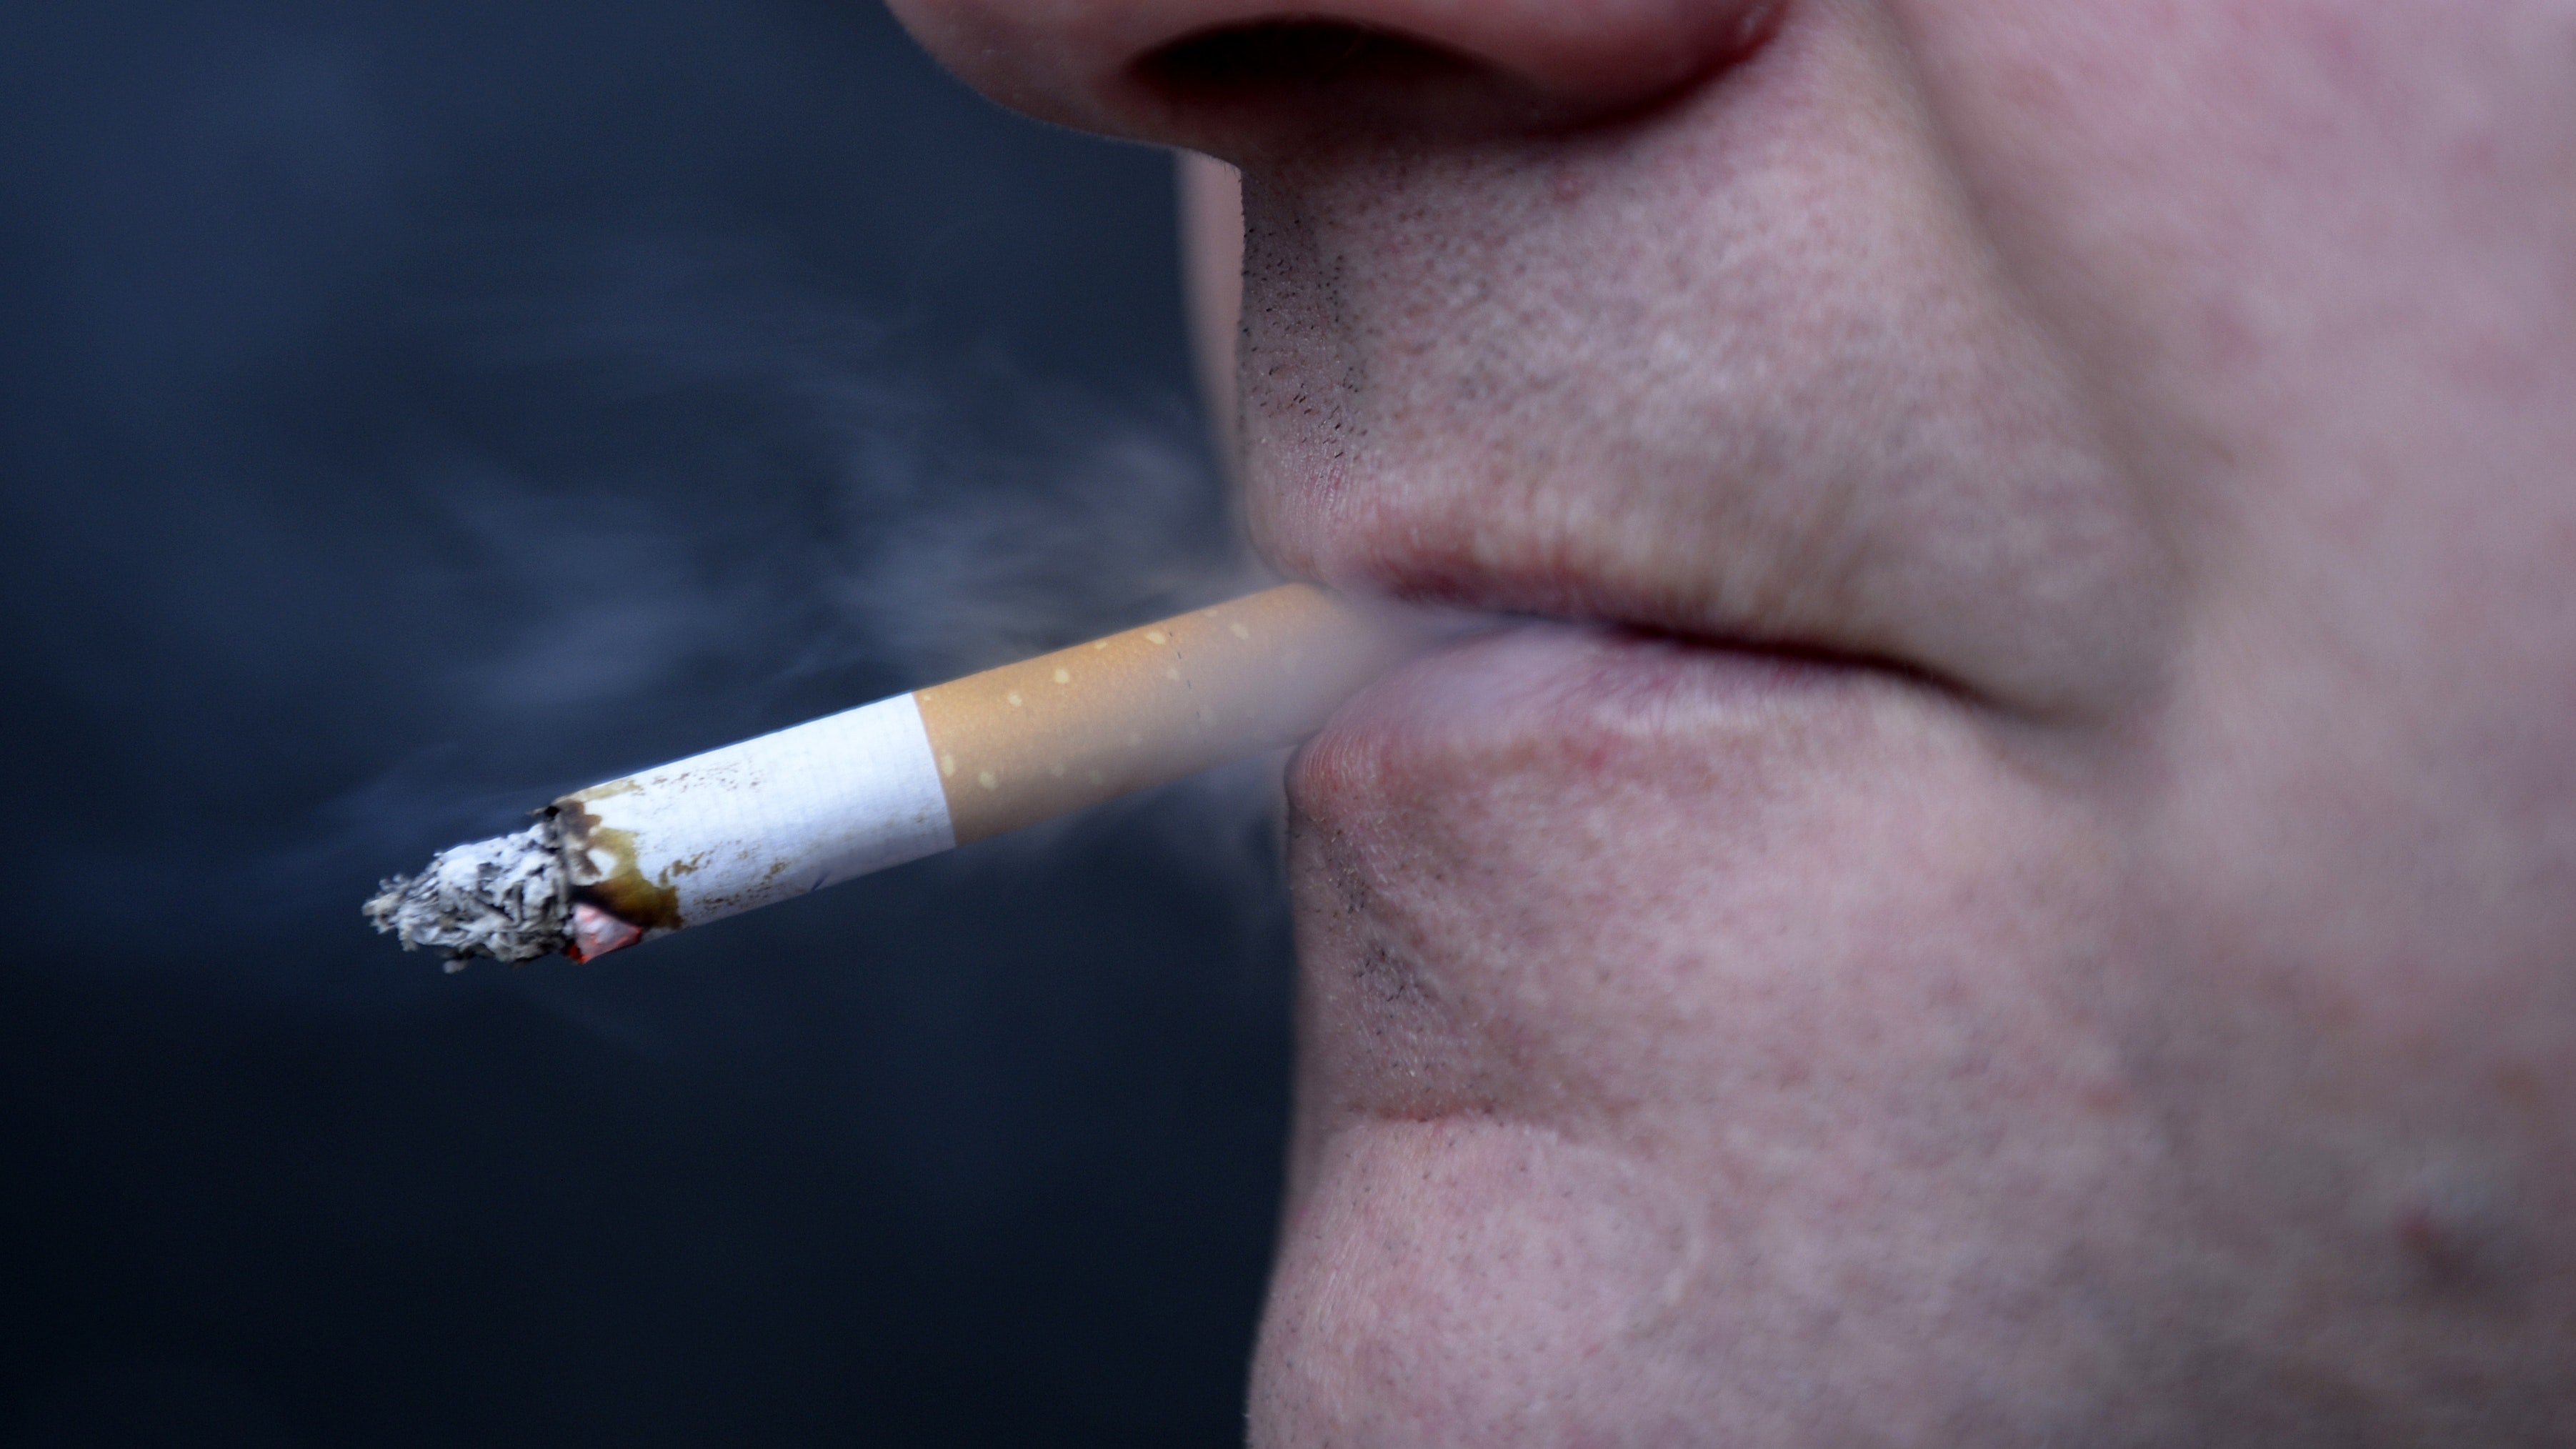 British government plans to eliminate smoking by 2030